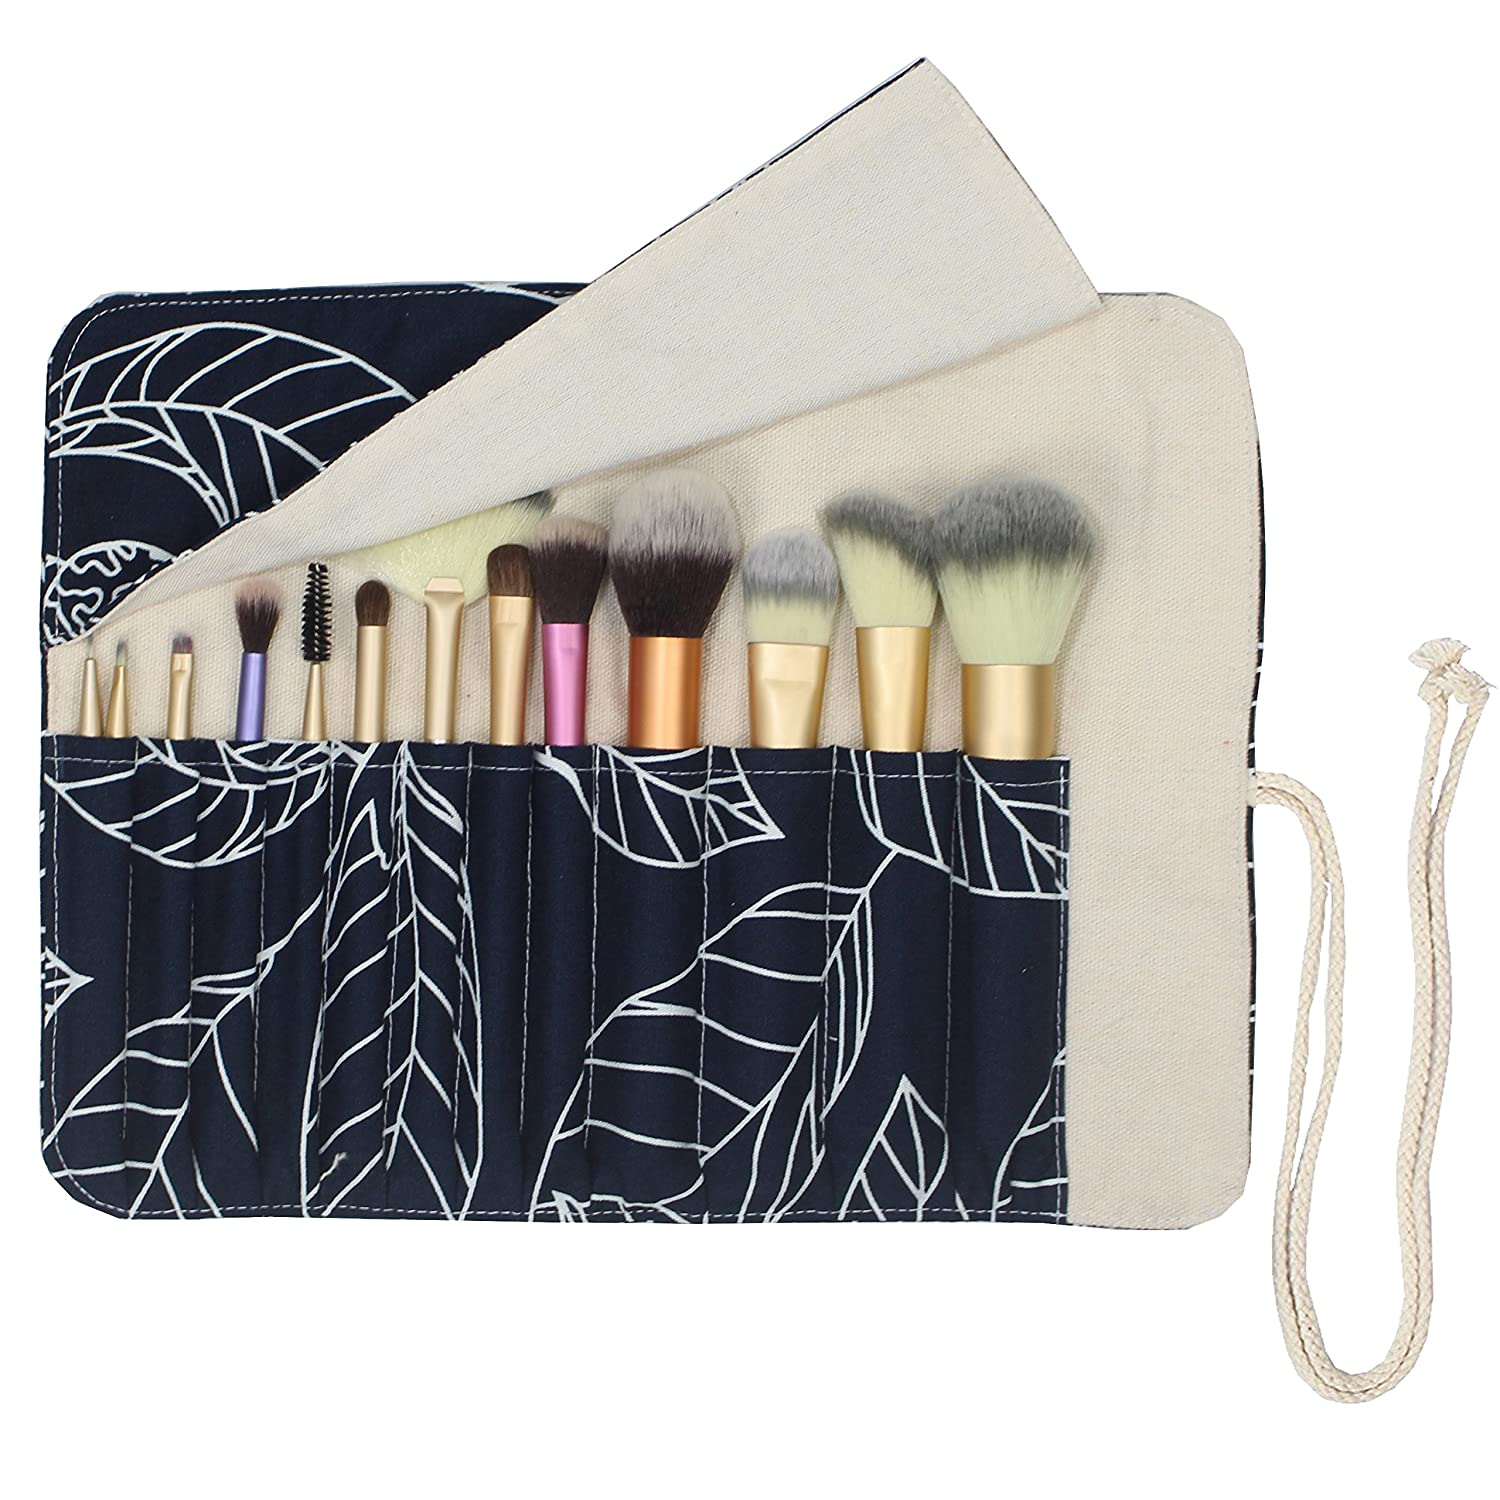 12 Pockets Makeup Brushes Rolling Case Pouch Holder Cosmetic Bag Organizer Case with Belt Strap, NO BRUSHES (Blue Leaf)